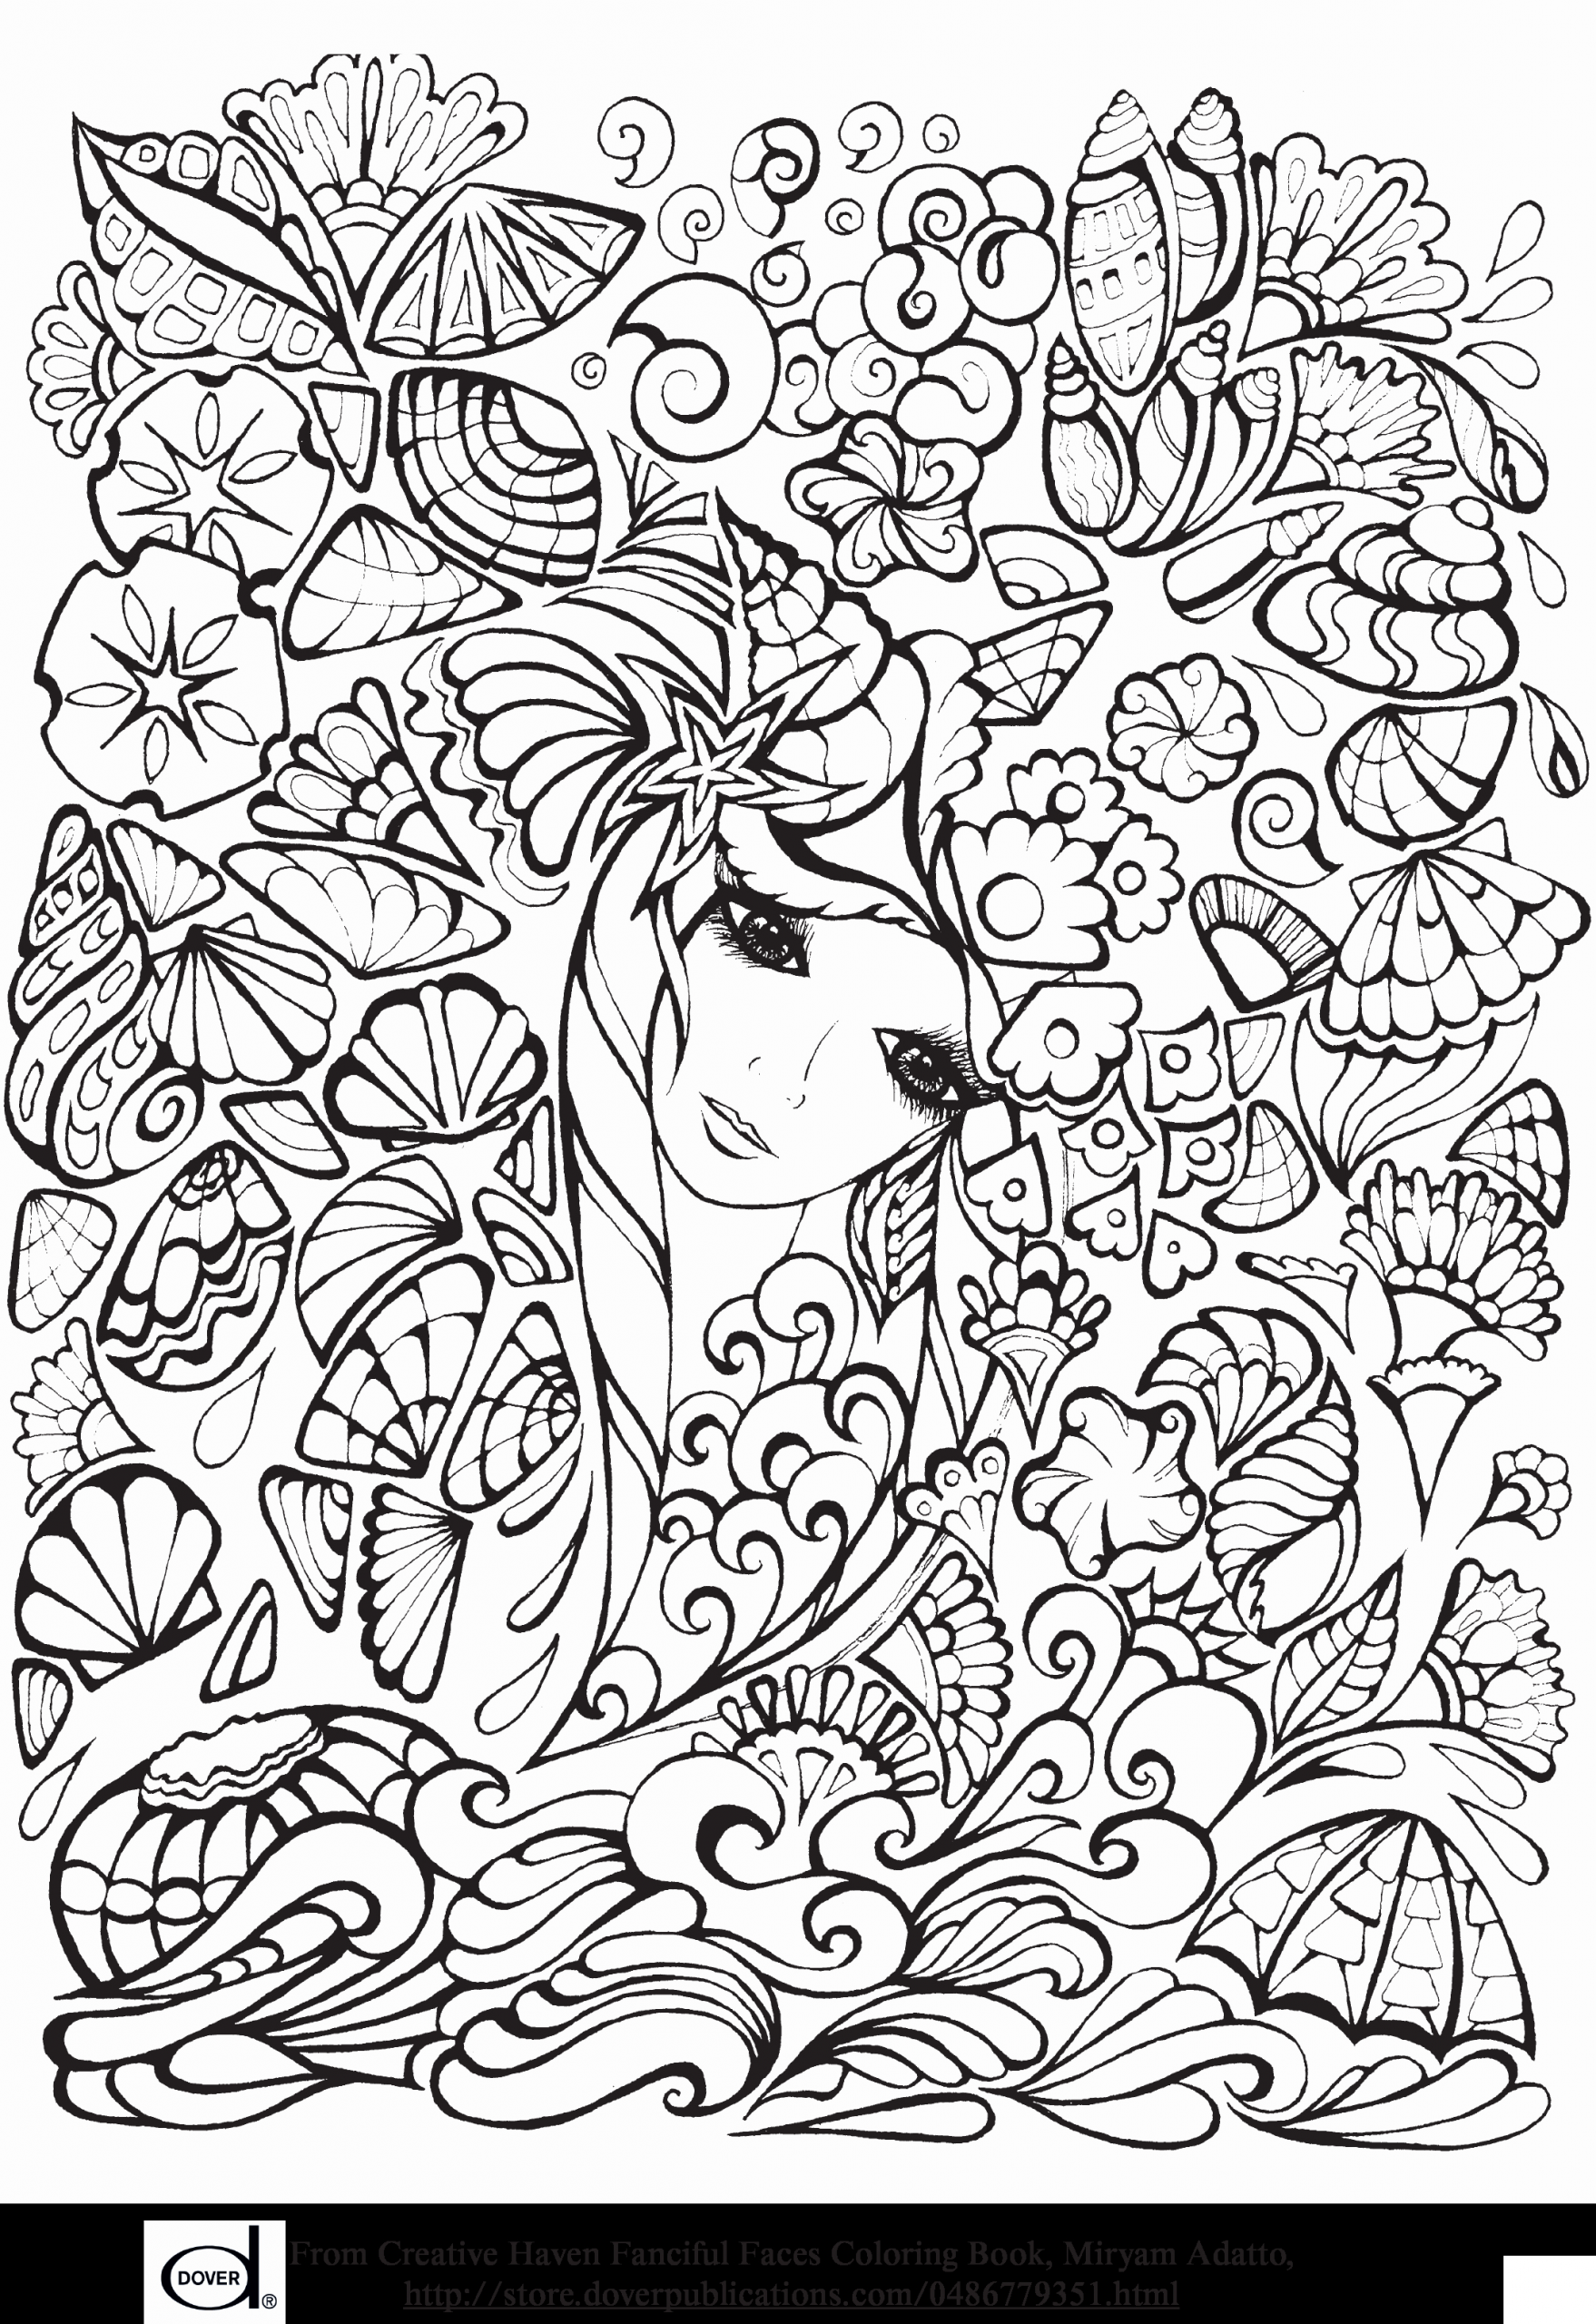 14+ Online interactive coloring pages for adults information